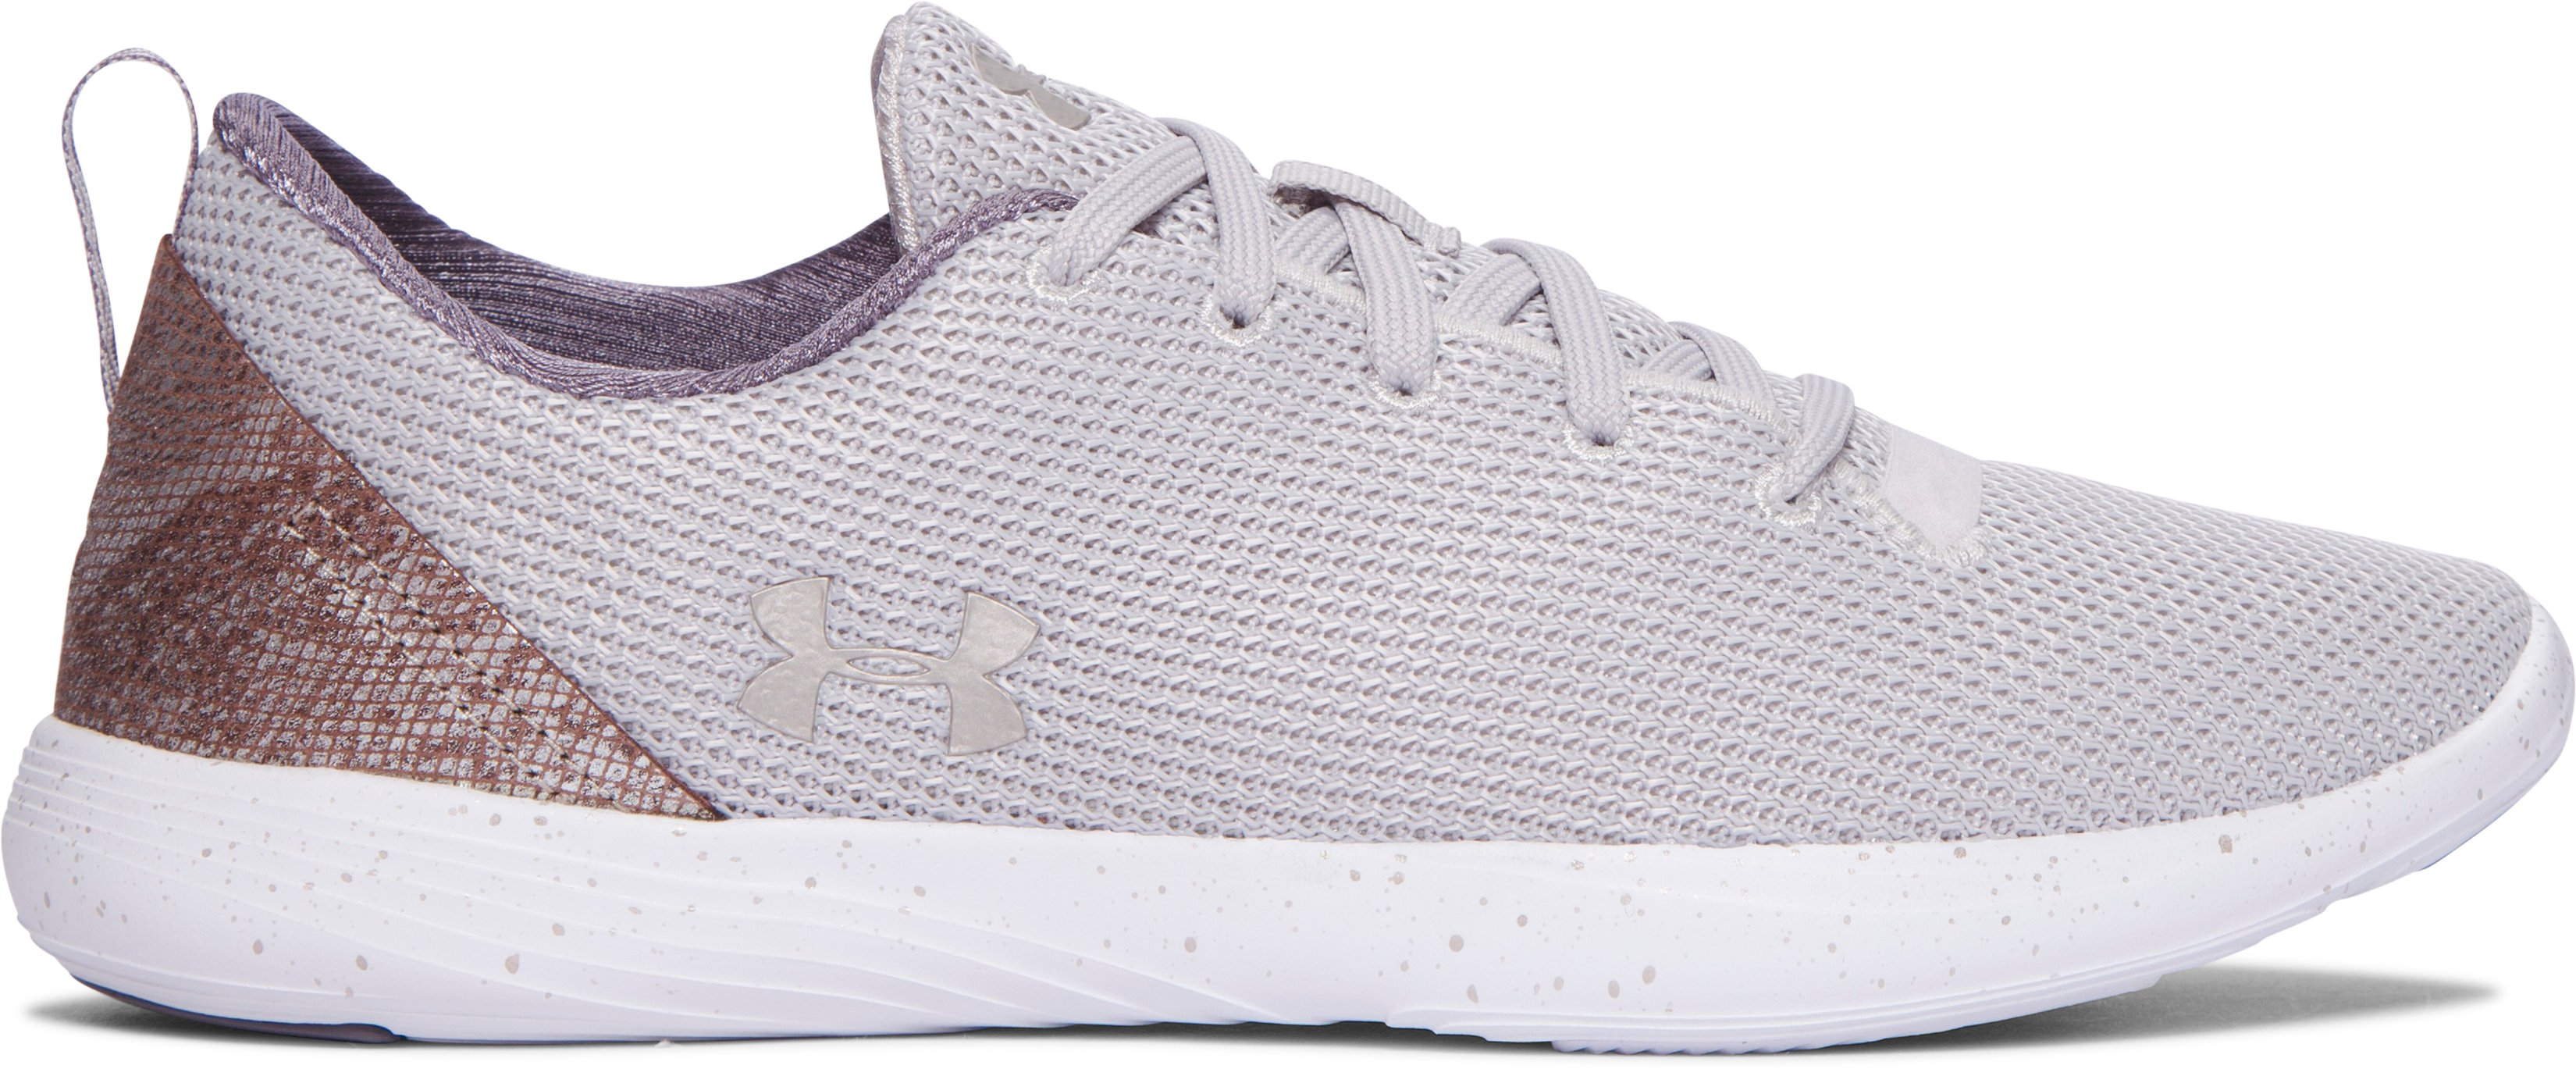 Women's UA Street Precision Sport Low Metallic Lifestyle Shoes, GRAY MATTER